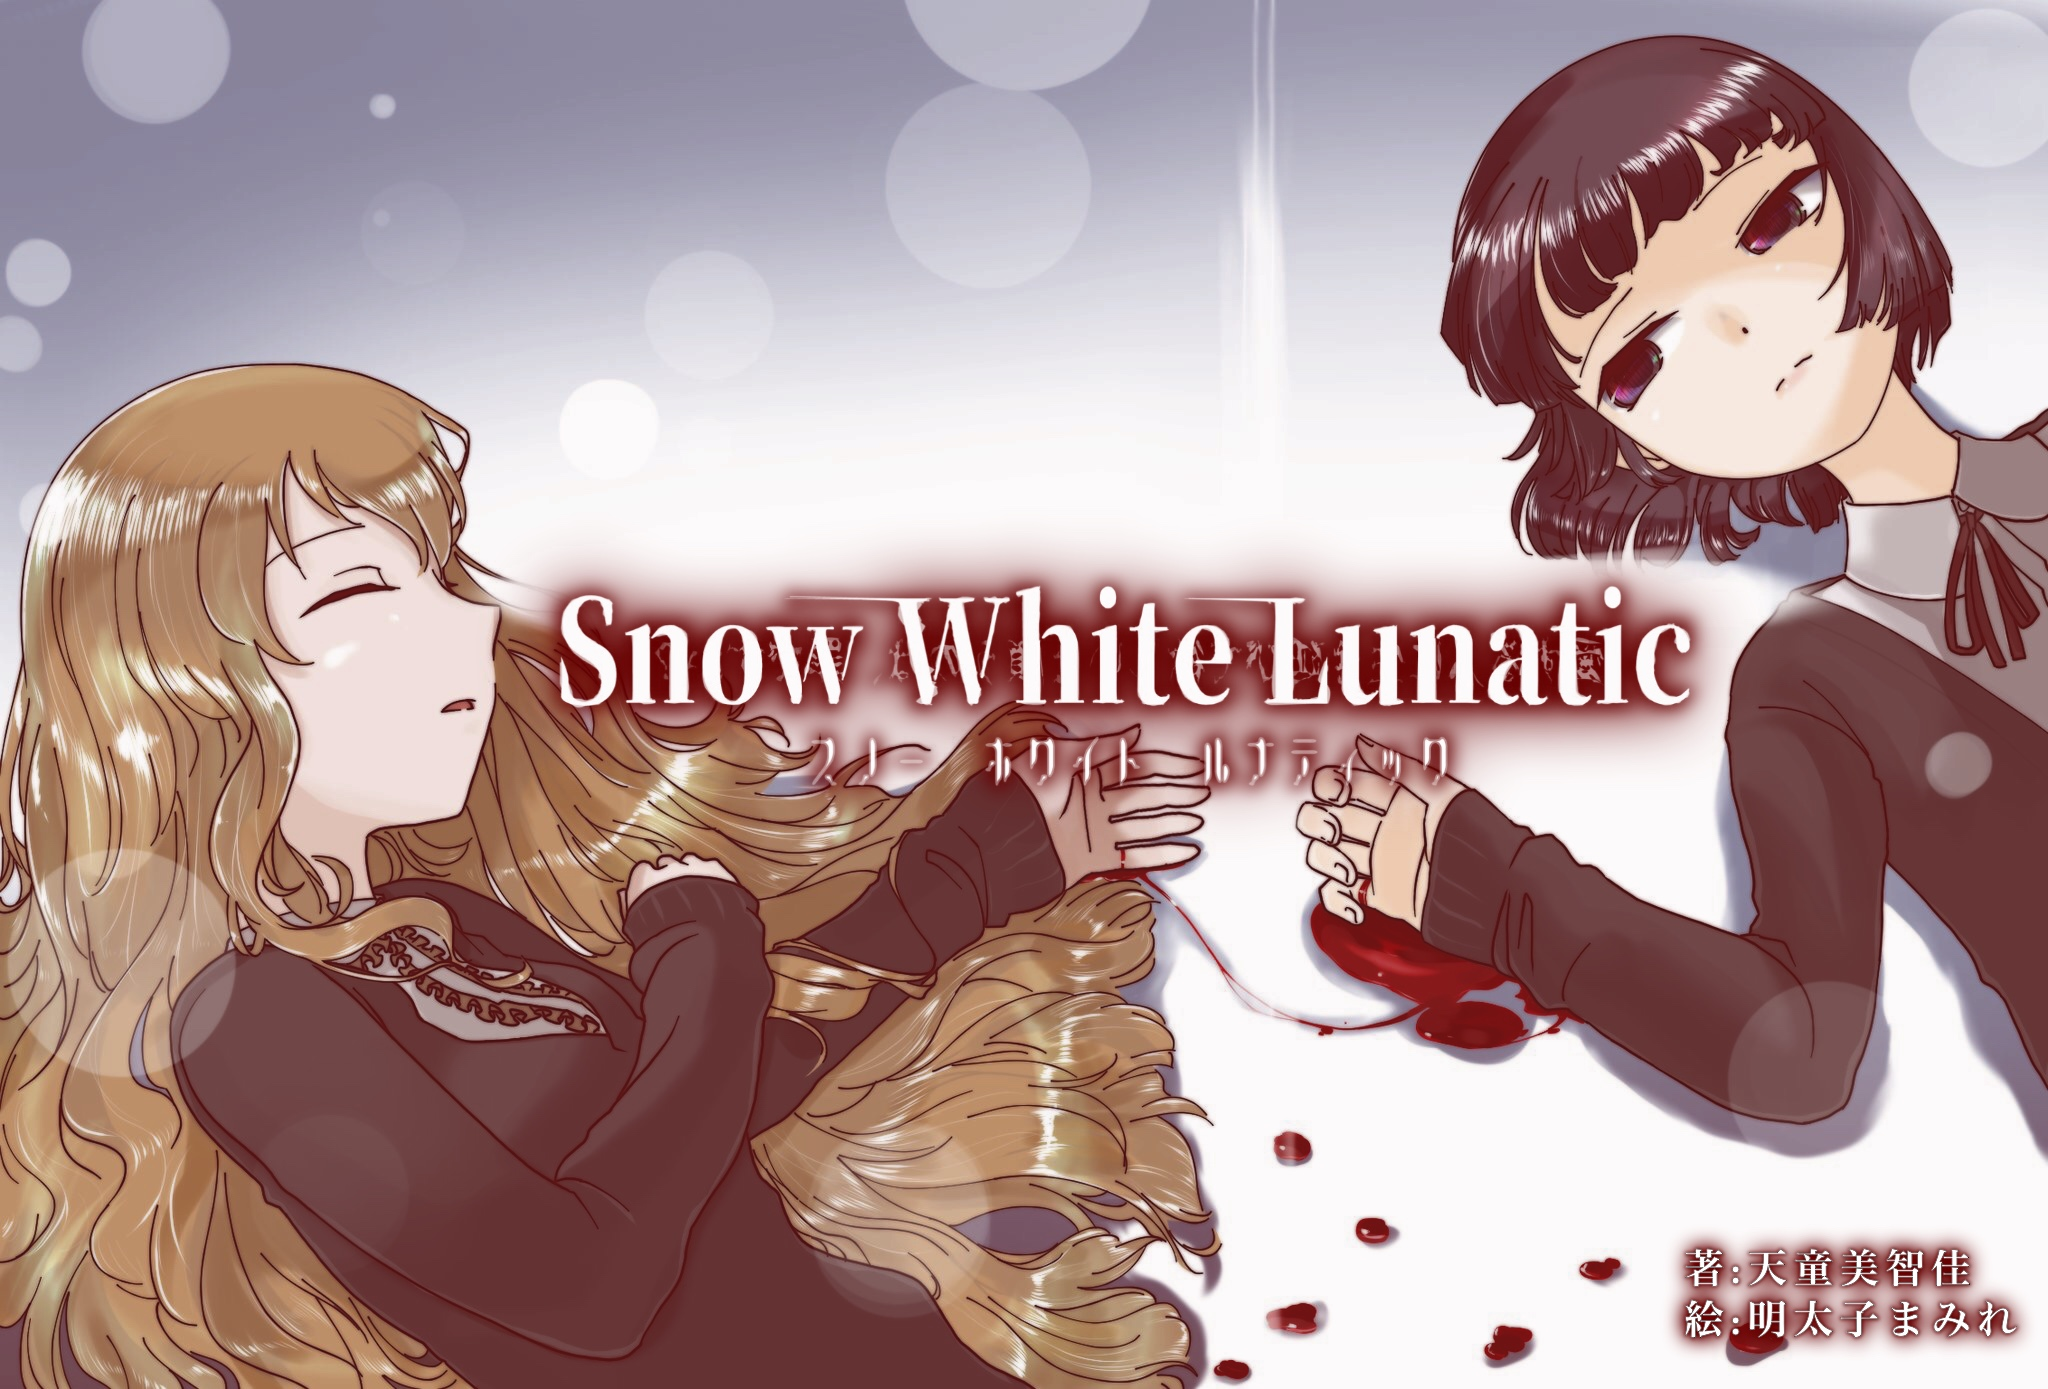 Snow White Lunatic